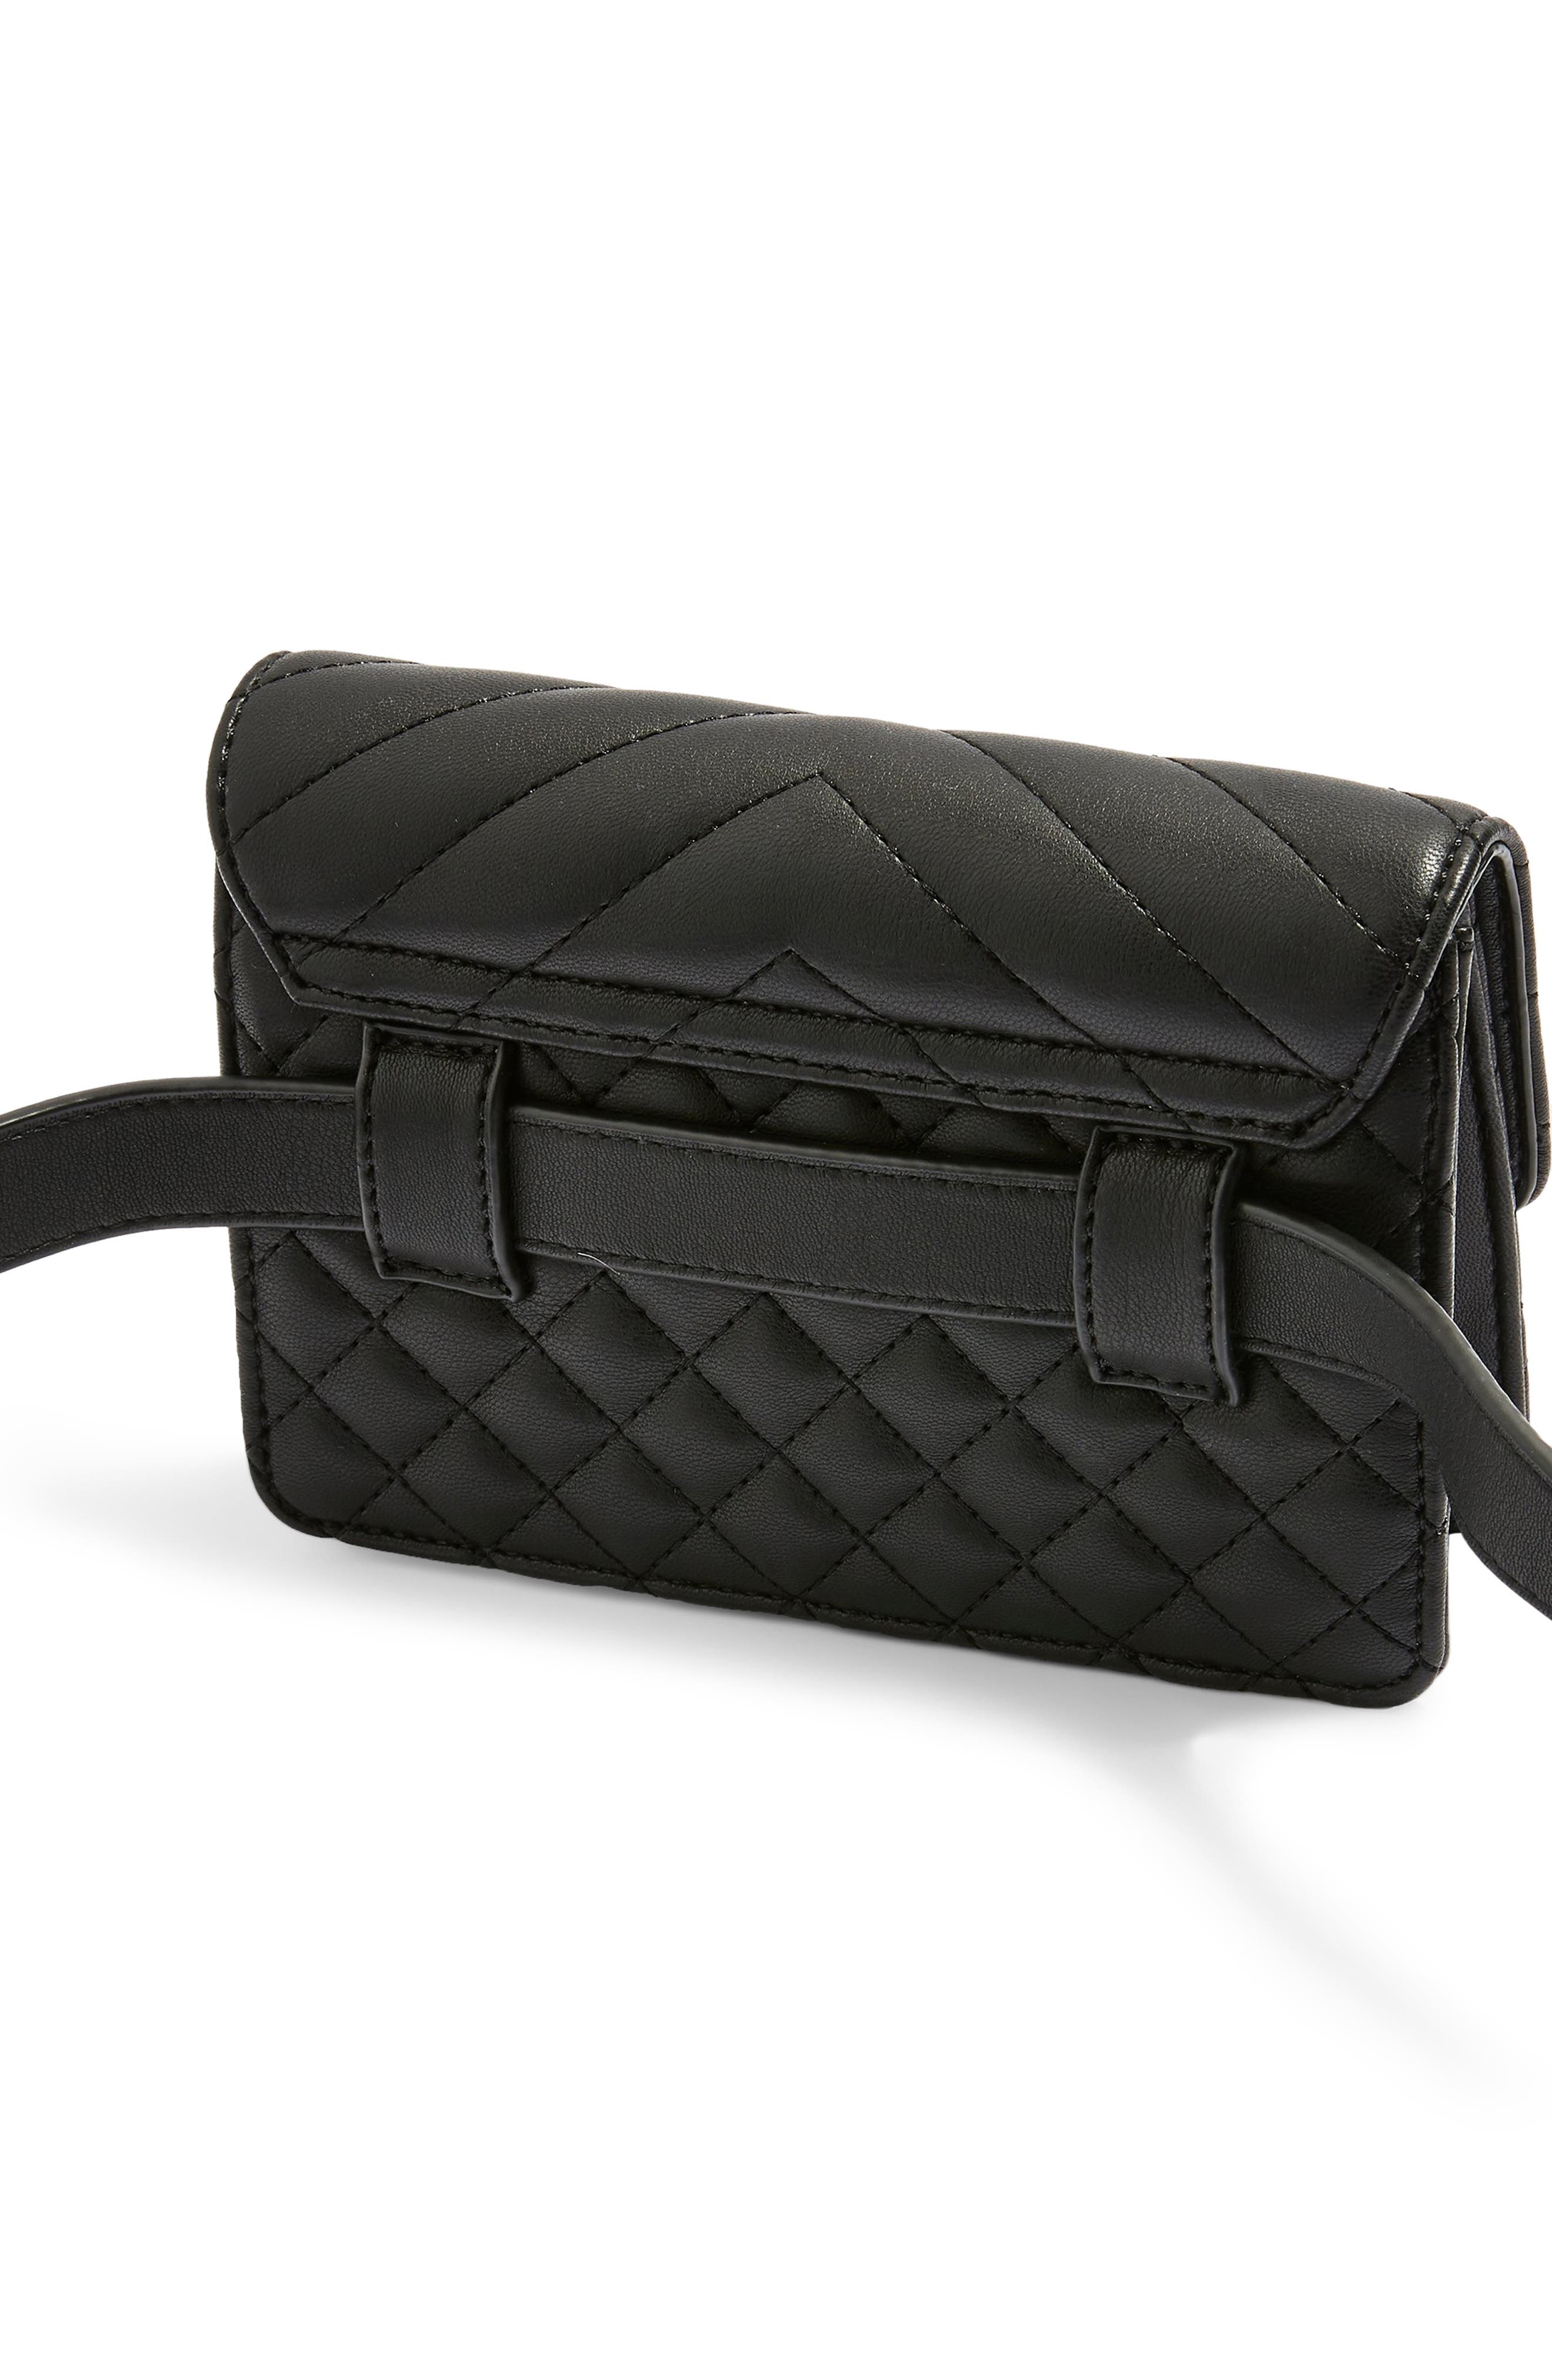 Prince Quilted Belt Bag,                             Alternate thumbnail 3, color,                             BLACK